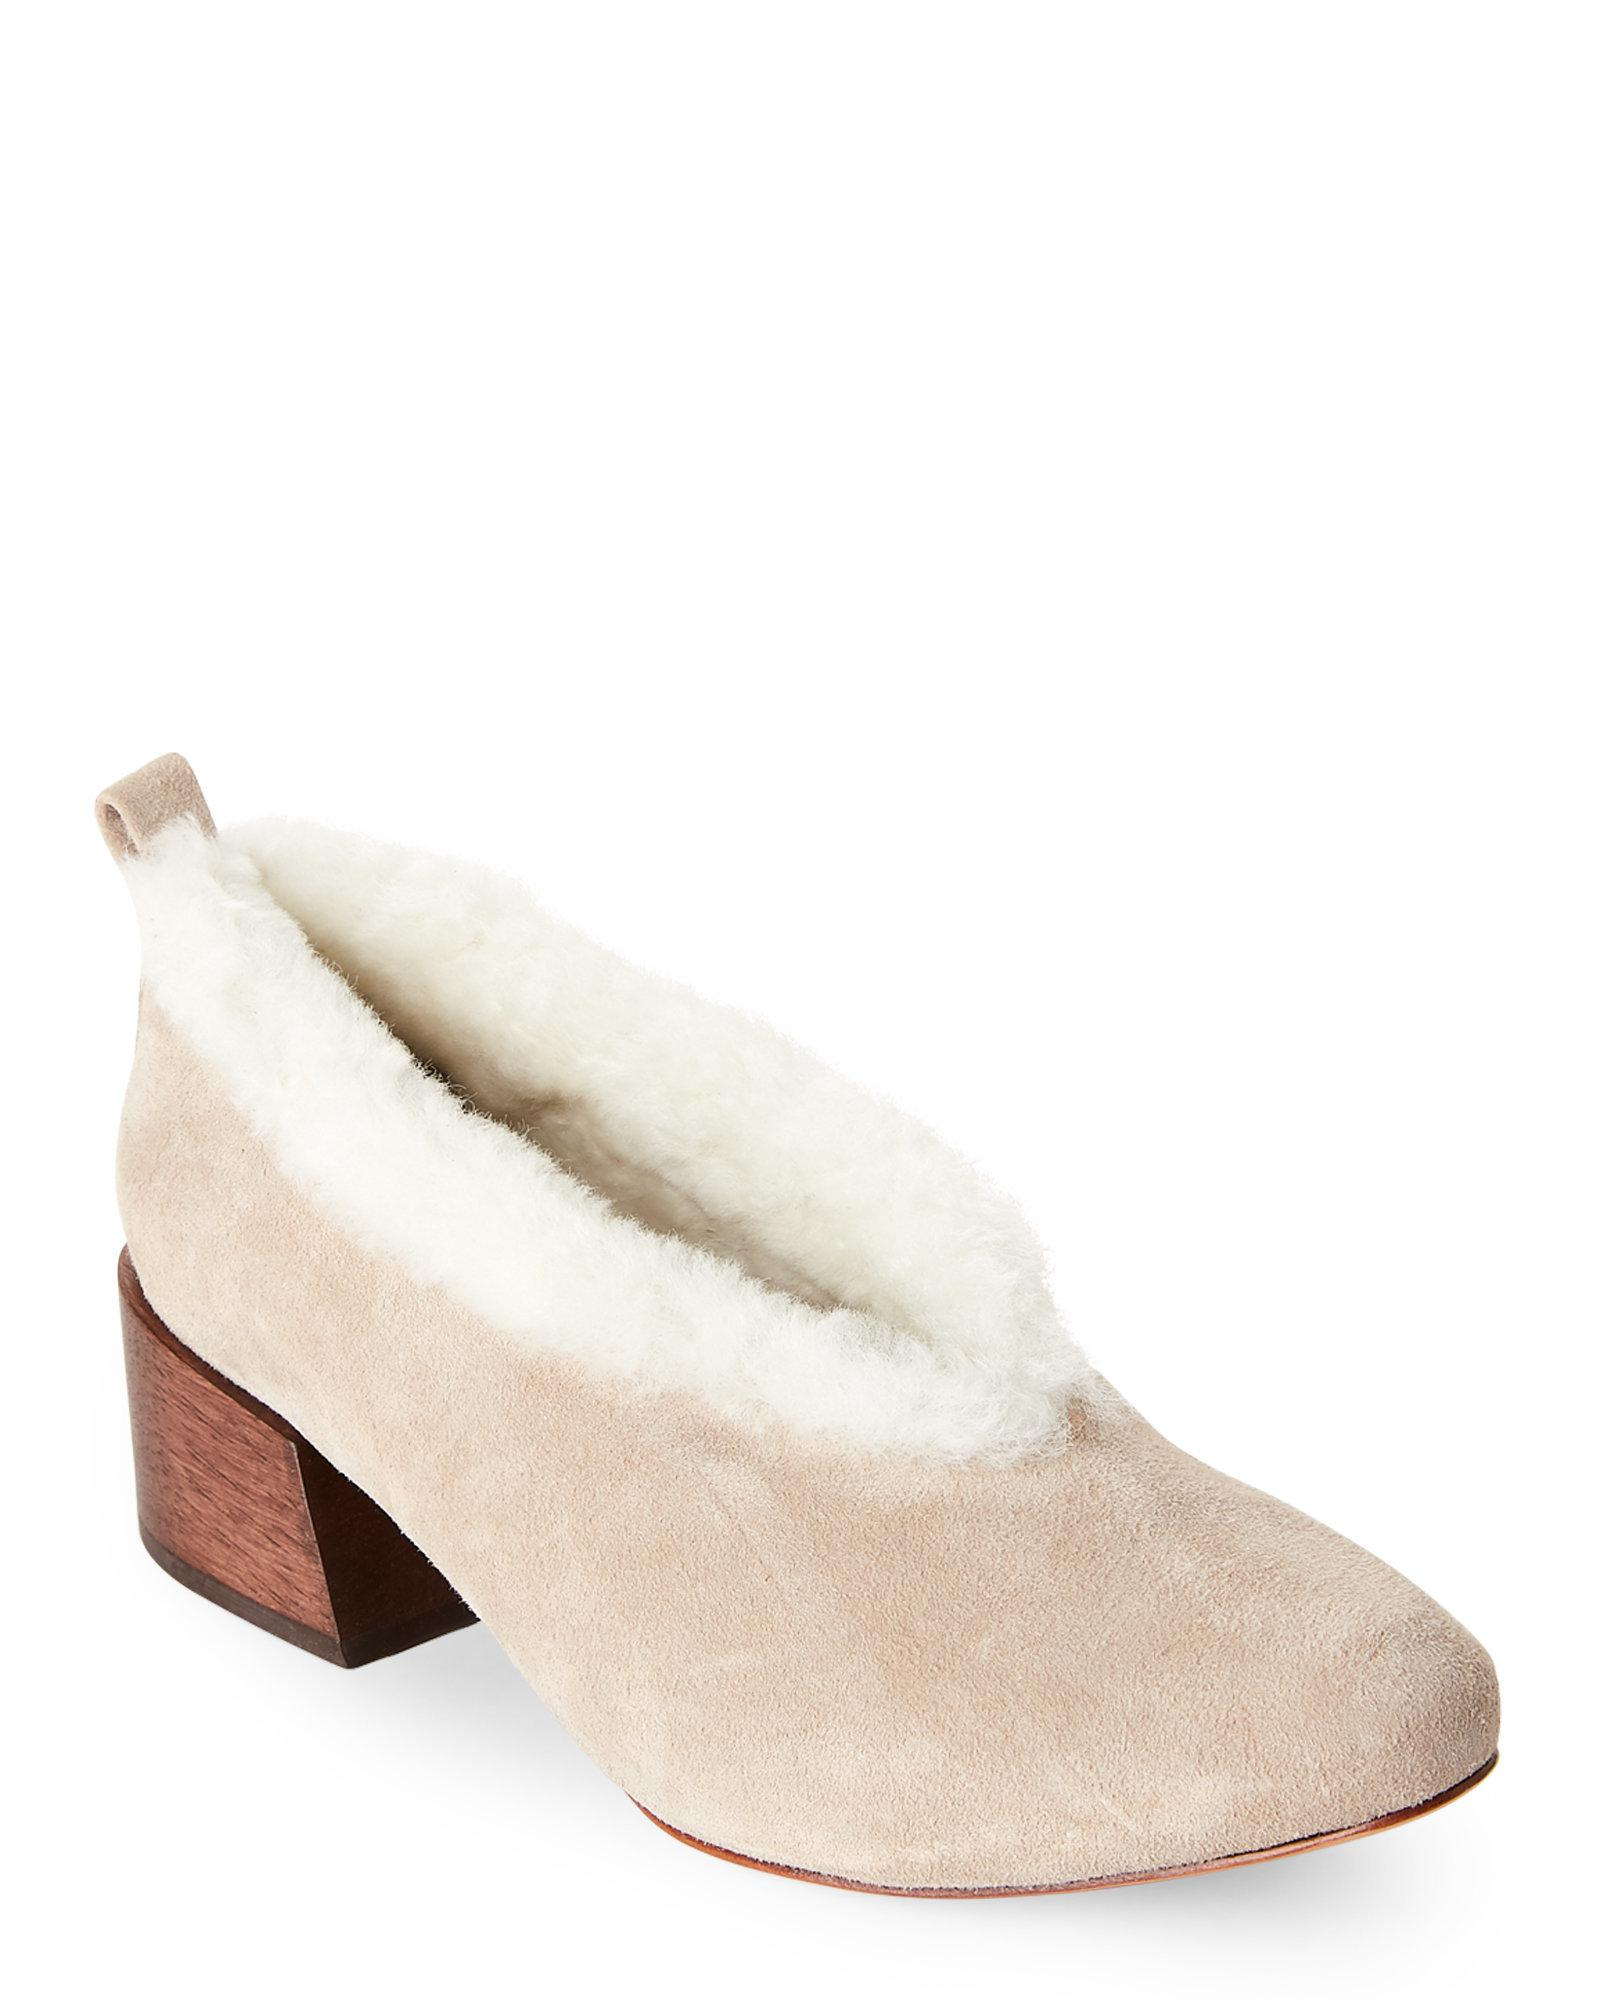 buy cheap low price fee shipping discount high quality Mari Giudicelli Suede Shearling-Trimmed Mules VM6NUr6